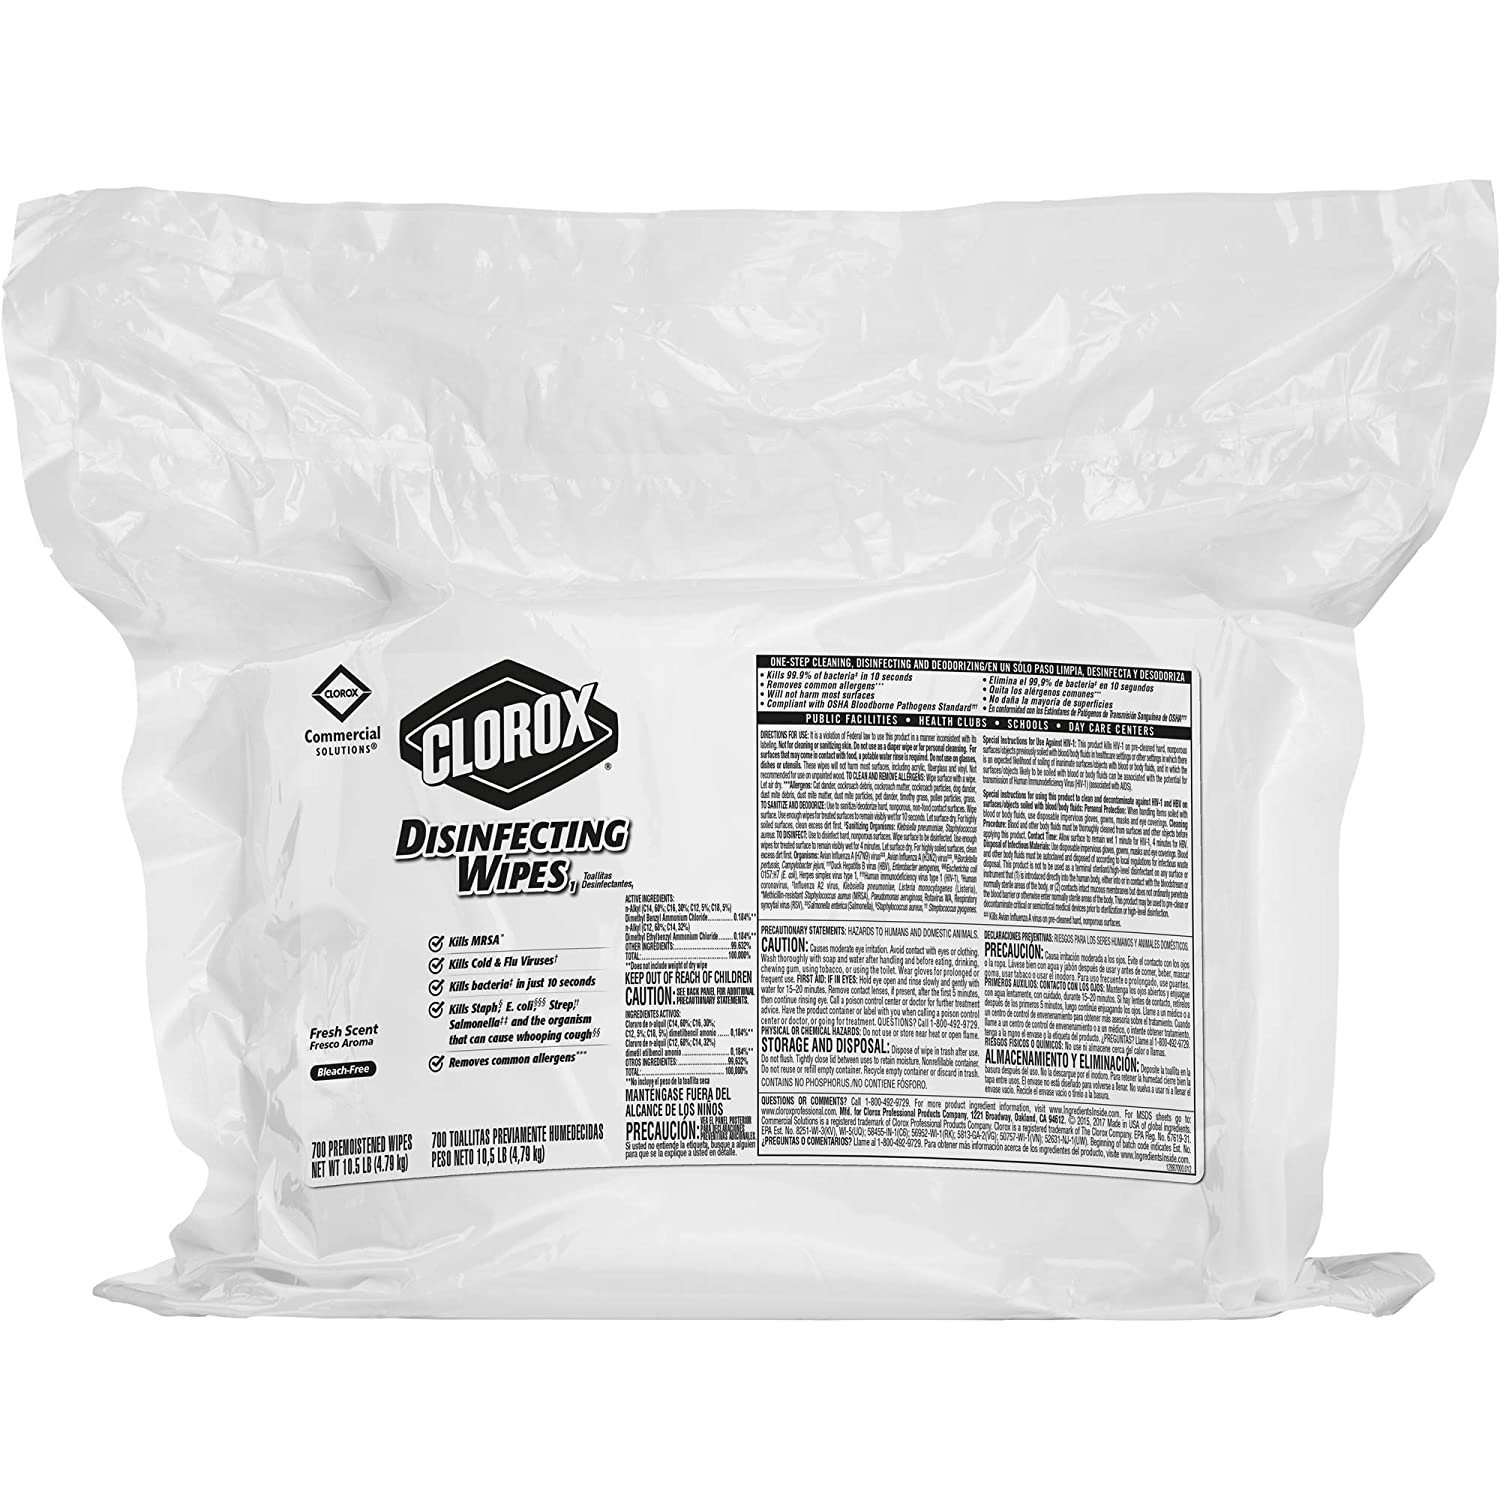 Clorox Commercial Solutions Clorox Disinfecting Wipes Fresh Scent  700 Wipes 2 RefillsCase 31428